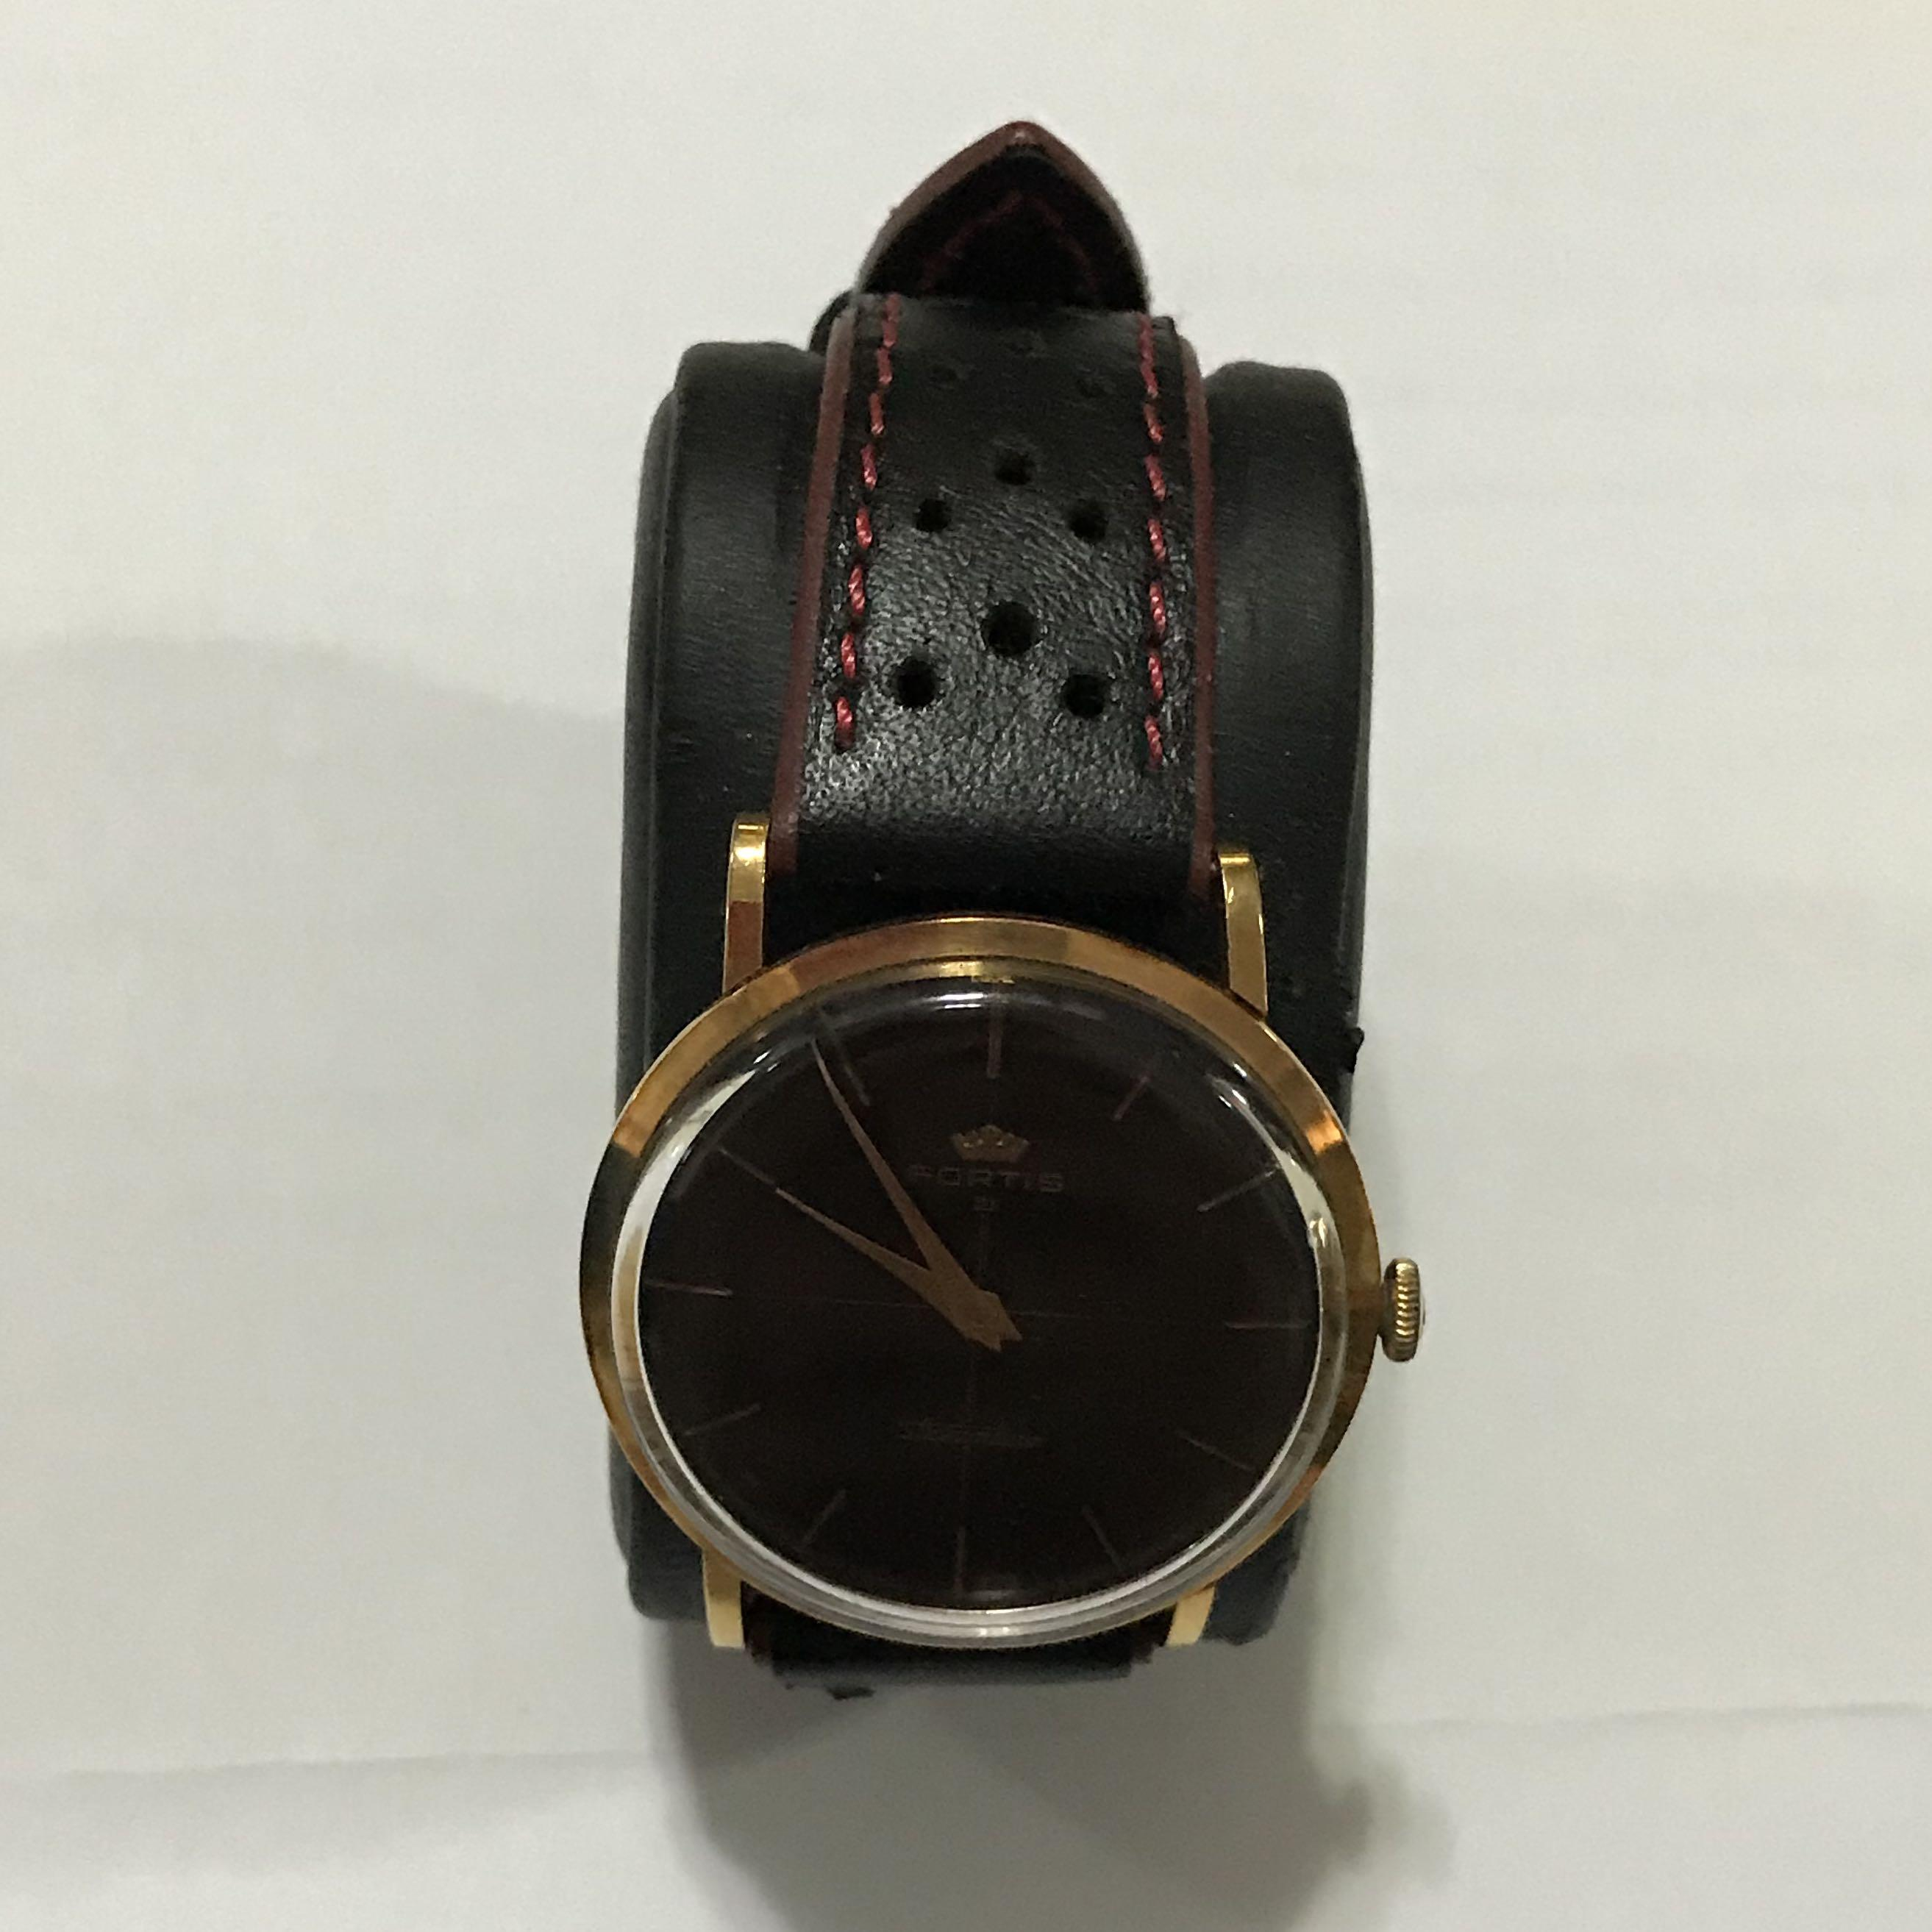 {Collectibles Item} Rare Authentic Vintage Fortis Brand Solid 18K Rose Gold Manual Winding Wrist Watch True Vintage Feature 2-Hand Movement & Raised Glass Minimal Wear & Tear With Texture Watch Face Approximately 37mm In Diameter & 7mm In Thickness